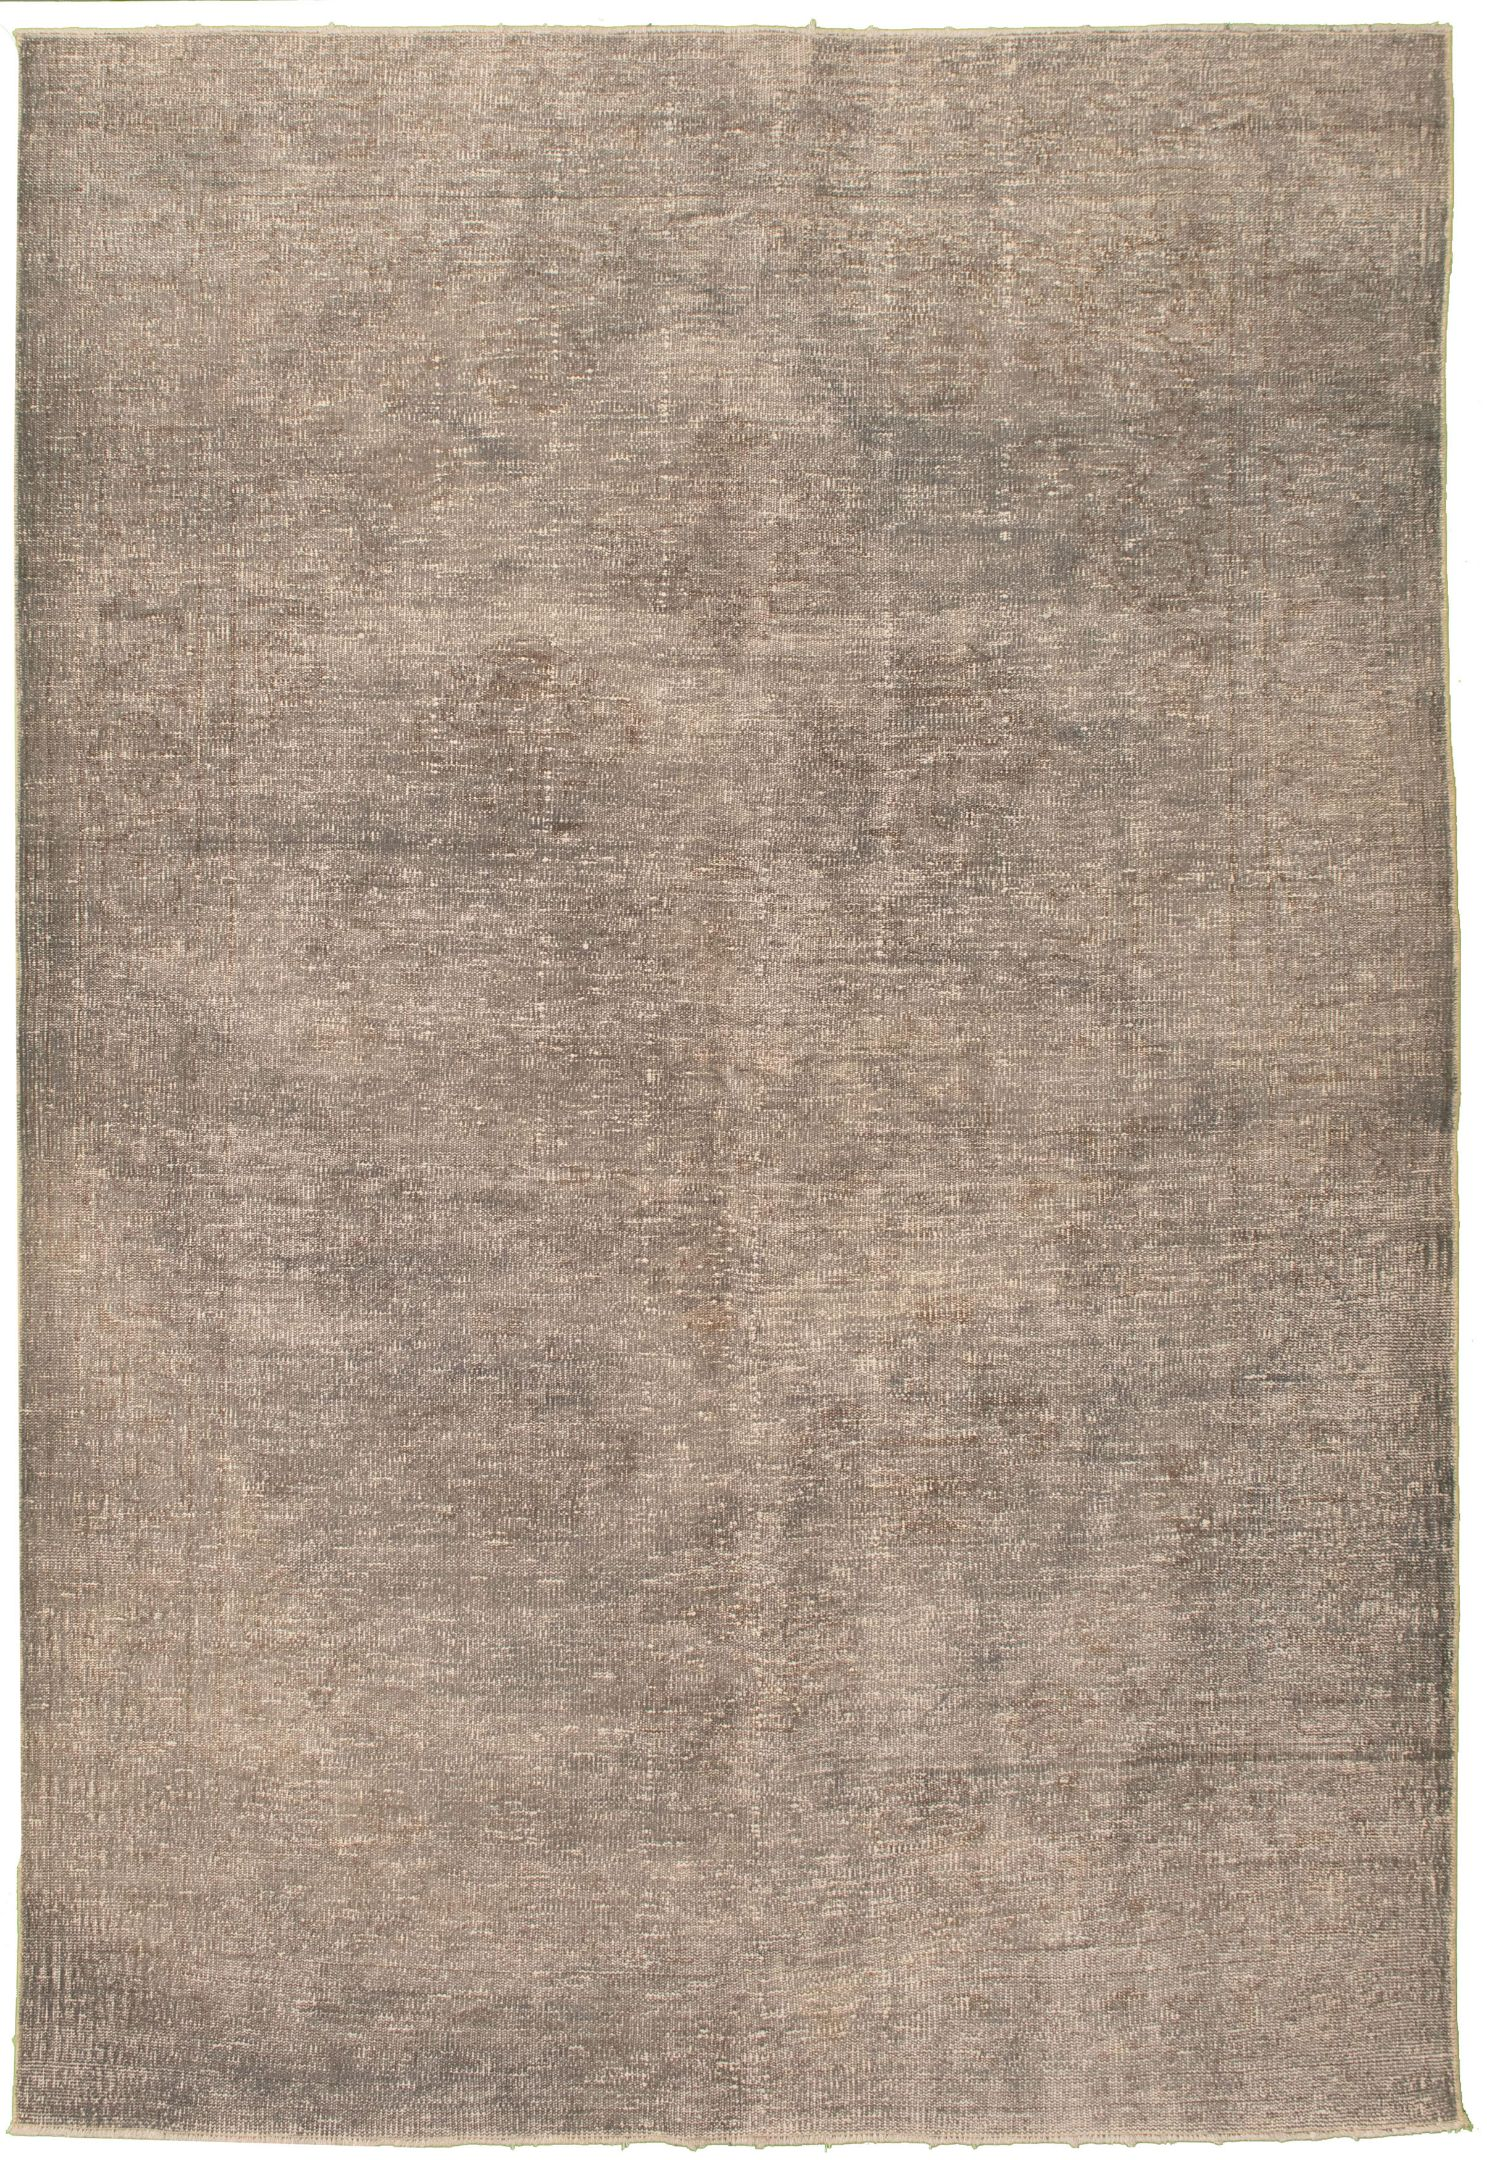 """Hand-knotted Color Transition Grey Wool Rug 6'5"""" x 9'9"""" Size: 6'5"""" x 9'9"""""""